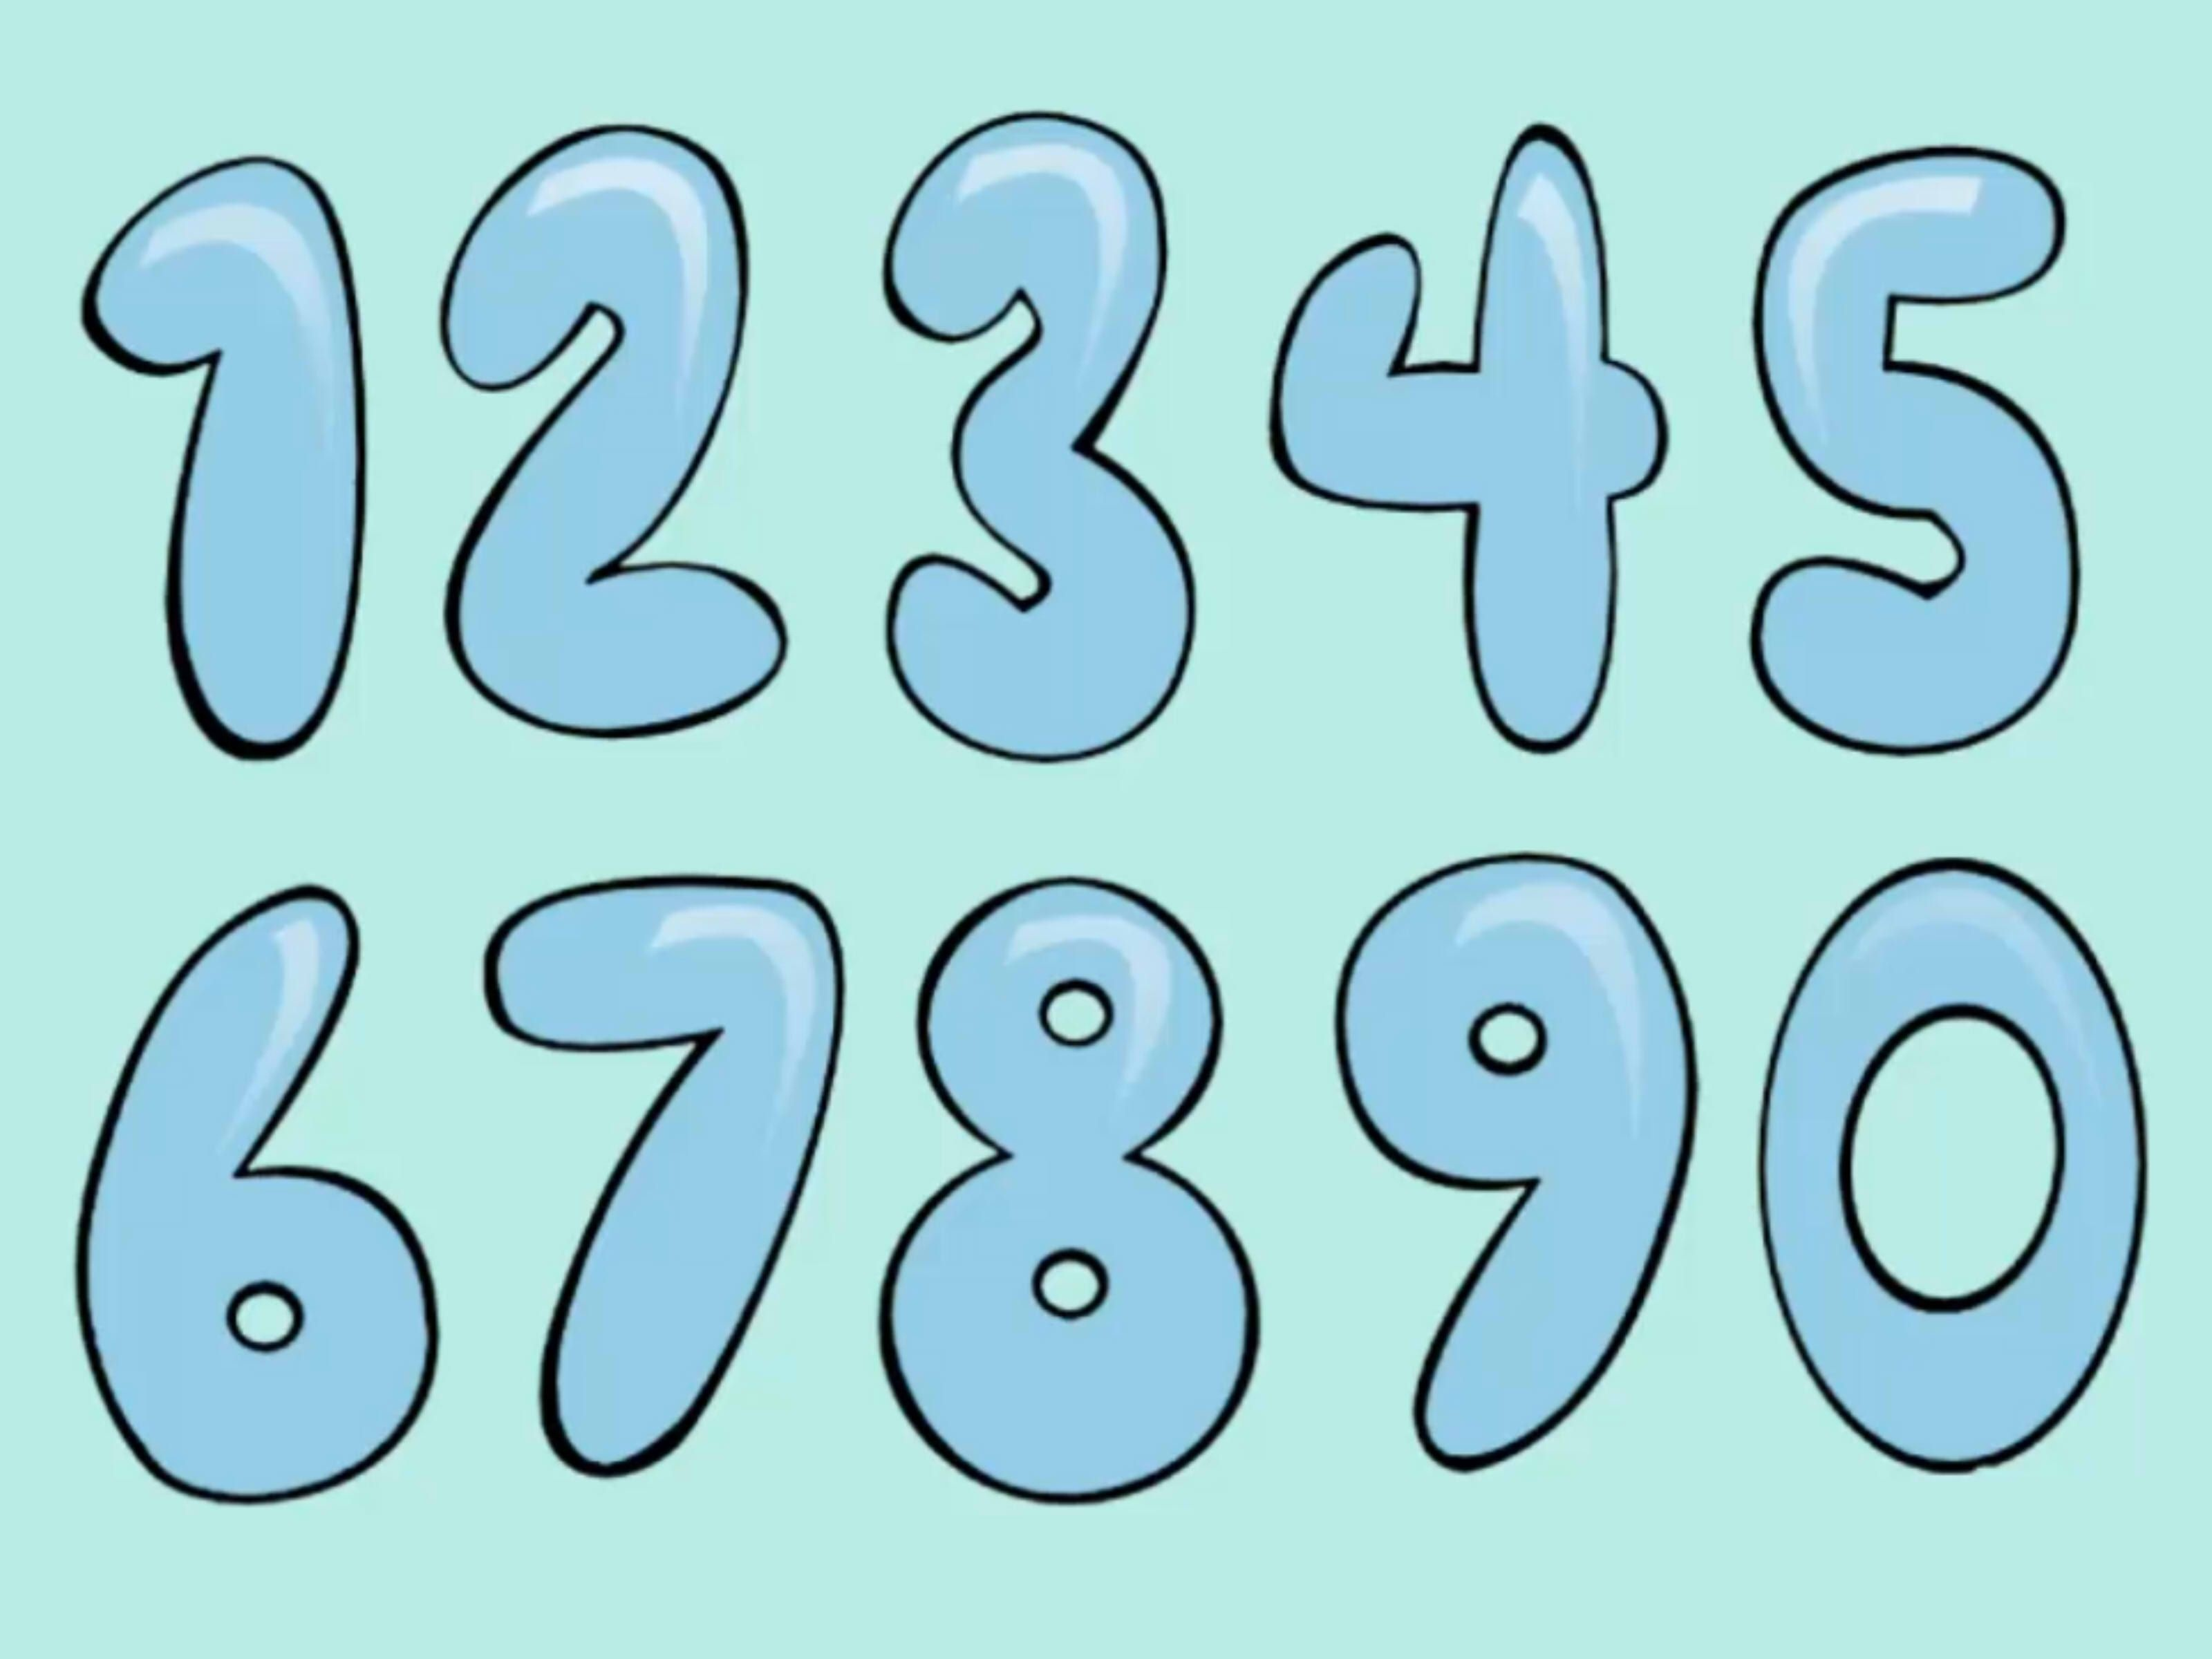 How To Draw Bubble Numbers | Stuff | Bubble Drawing, Bubble Numbers - Free Printable Bubble Numbers